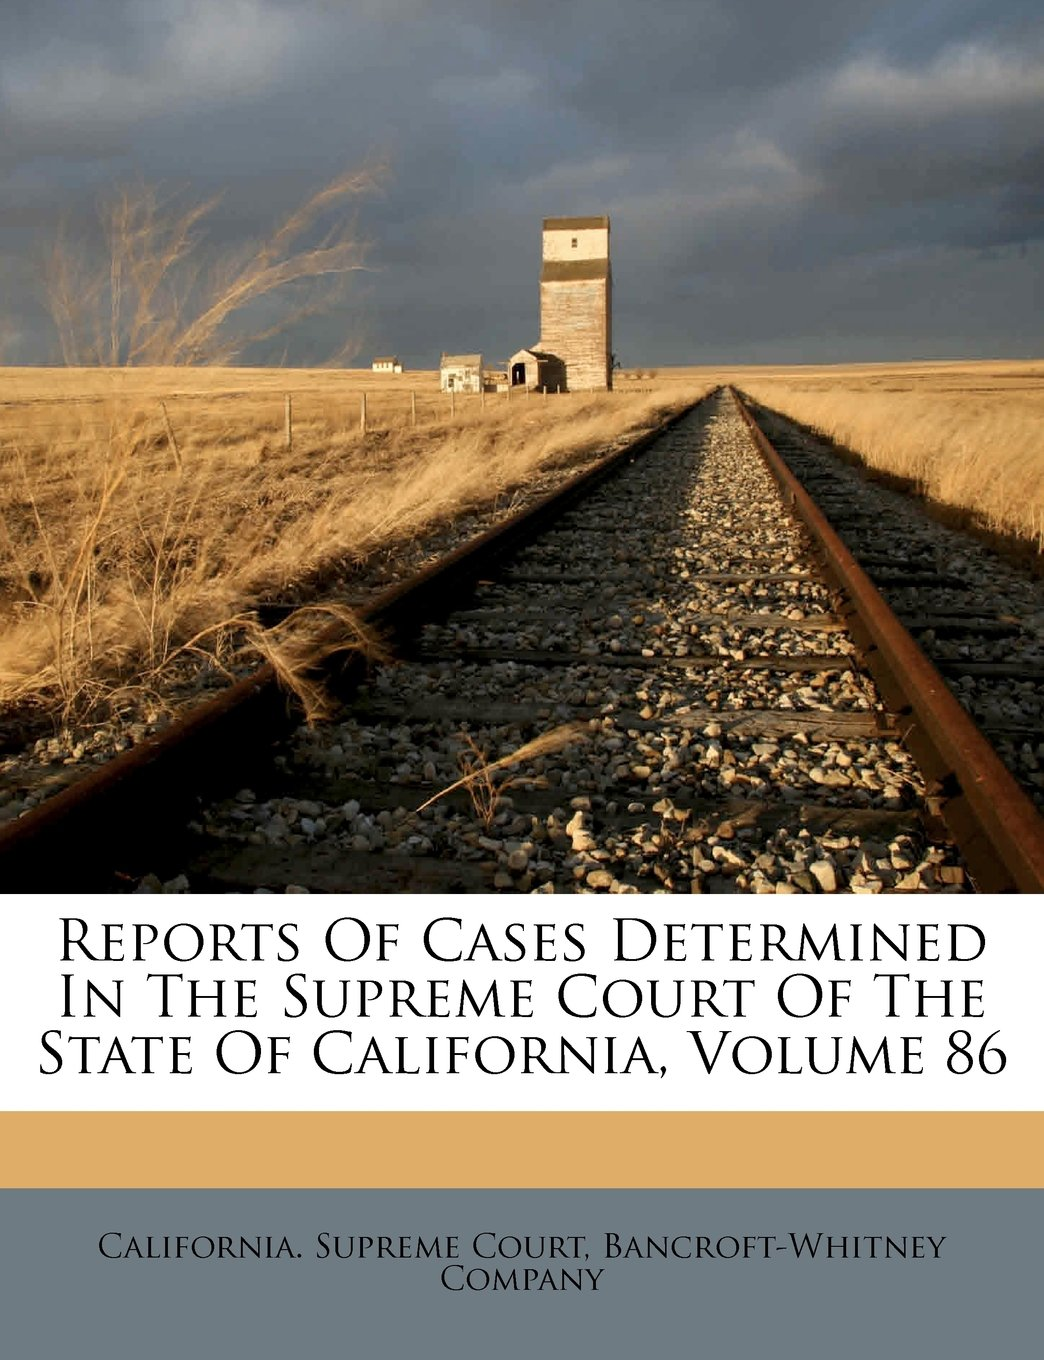 Reports Of Cases Determined In The Supreme Court Of The State Of California, Volume 86 ebook